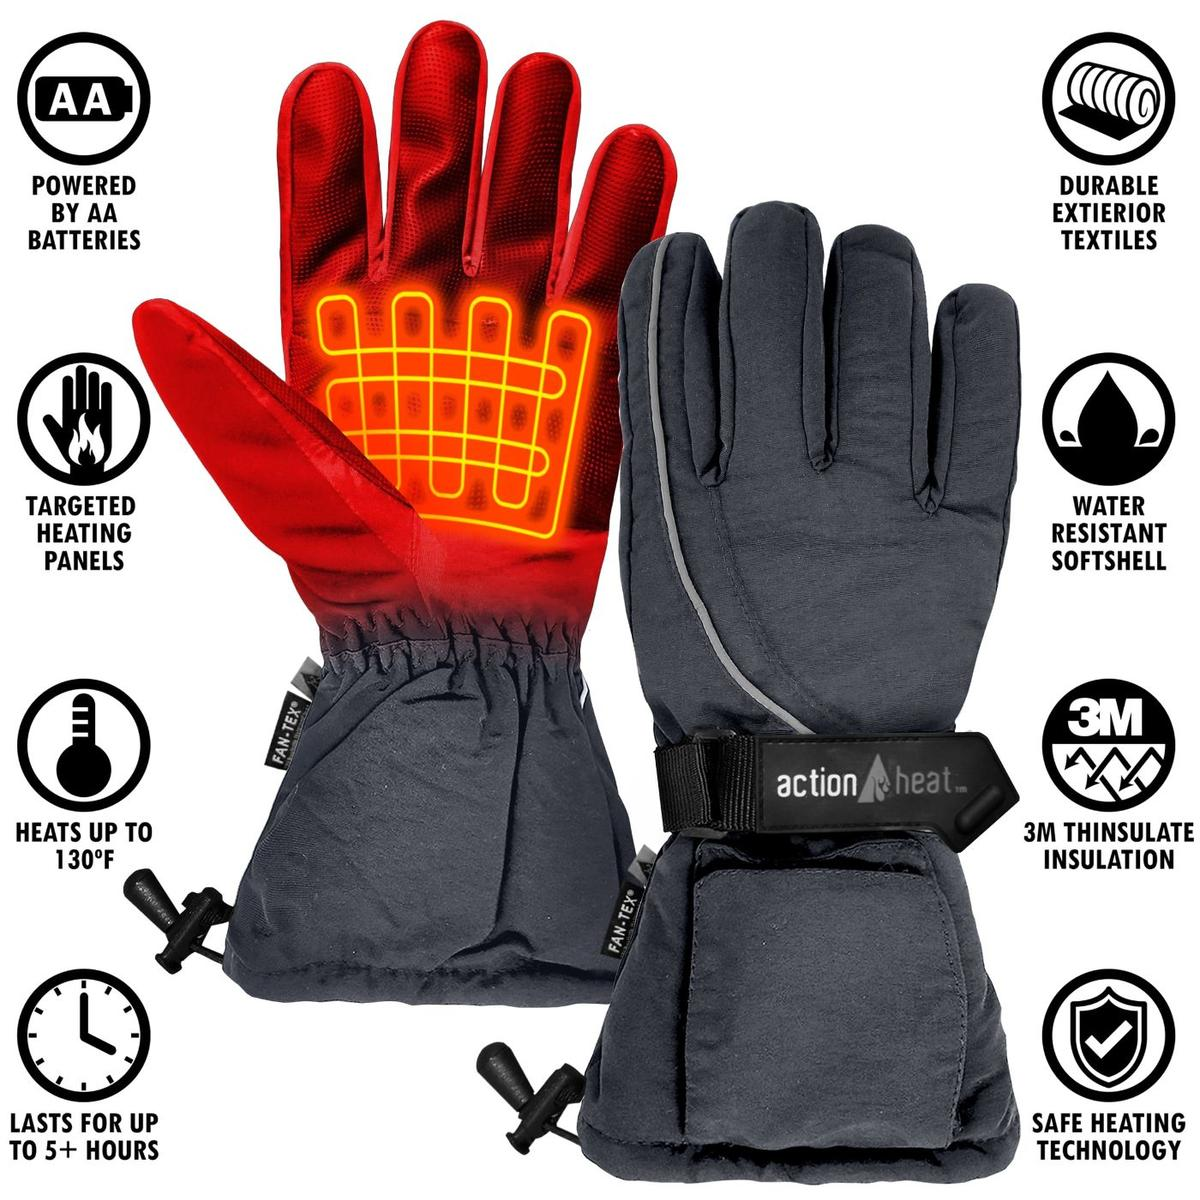 ActionHeat AA Battery Heated Gloves - Men's - Info